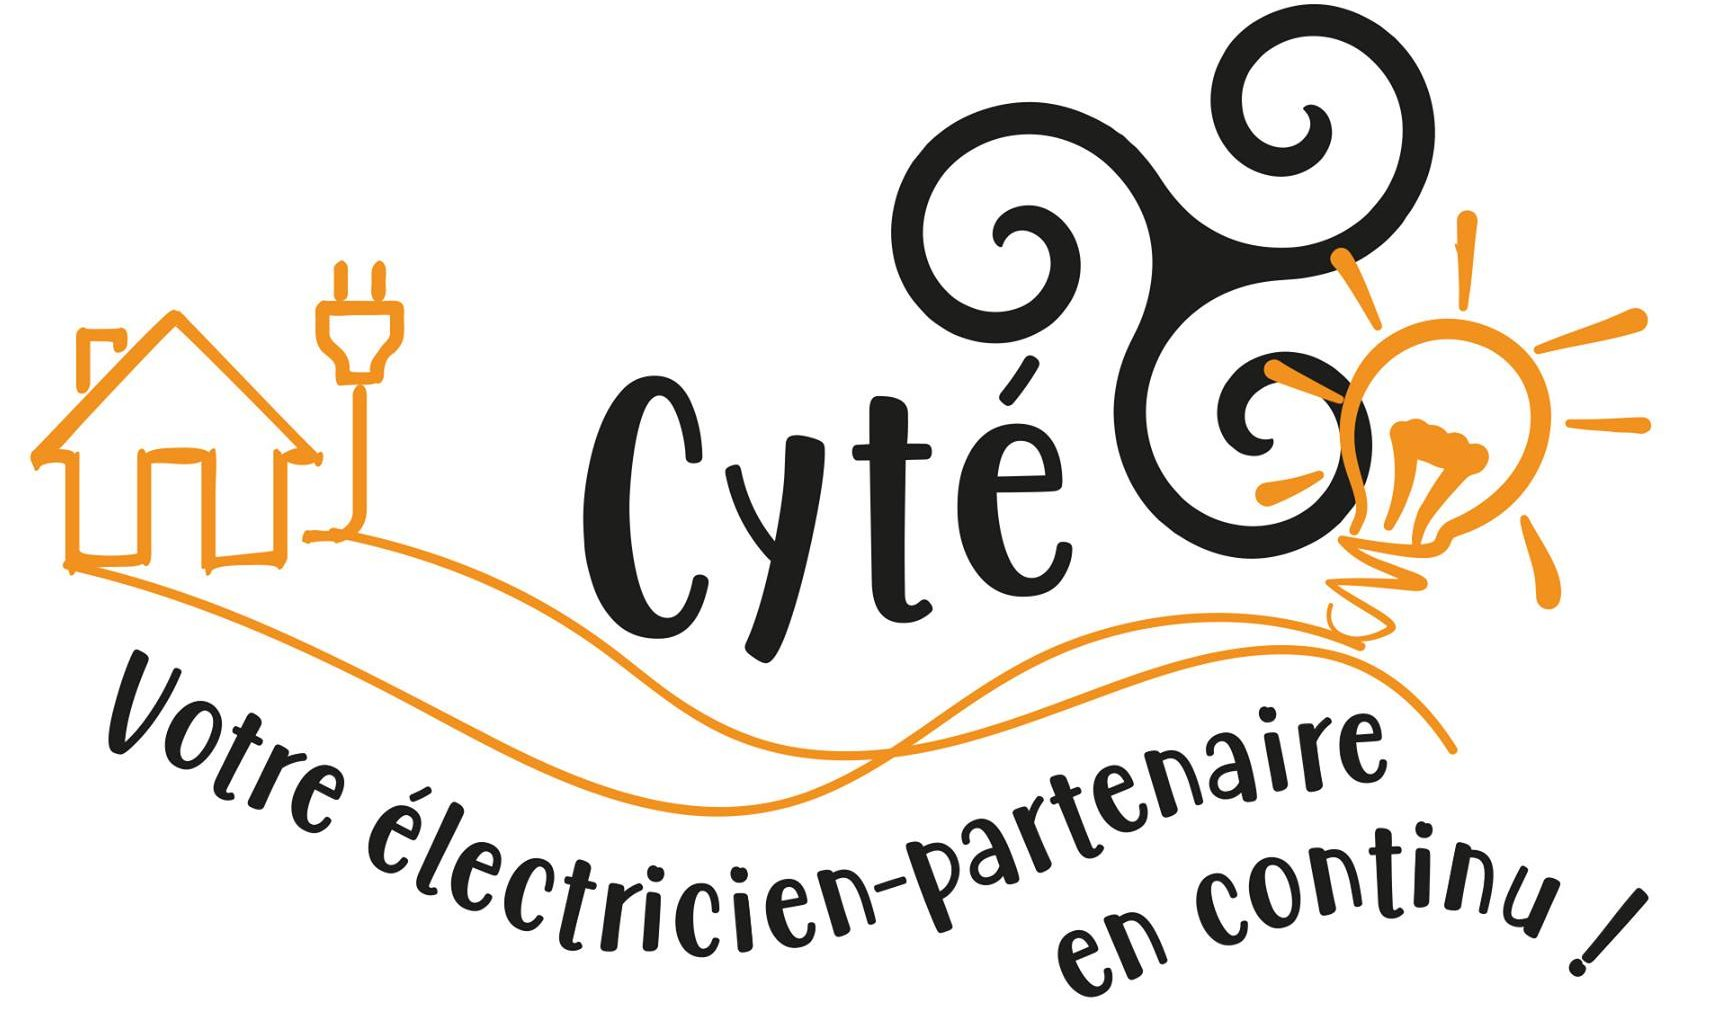 Cyte electricite